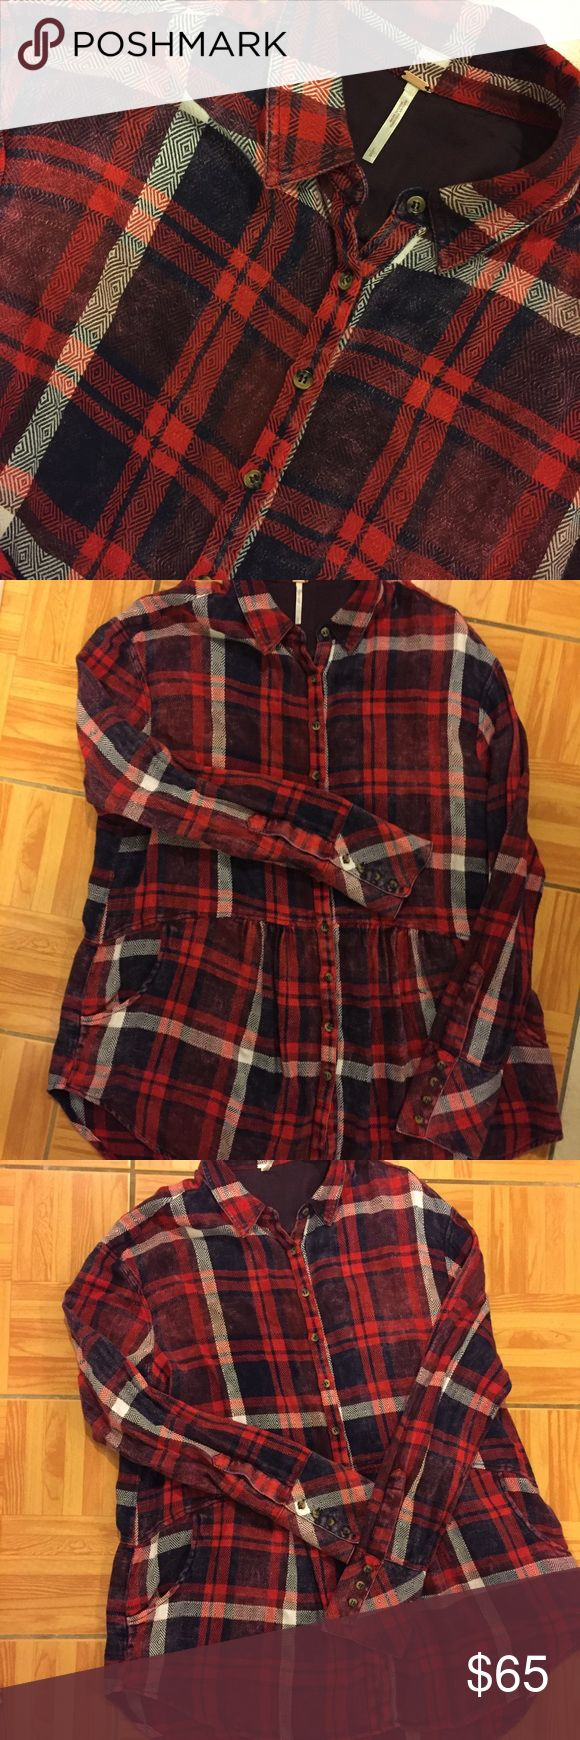 NWOT Free People Plaid Flannel Tunic w/ Pockets •new without tags! •58% Rayon, 42% Polyester  •Peplum style •has pockets •oversized, can fit an XL  🌻NO TRADES 🌻OFFERS WELCOMED! 🌻BUNDLE TO SAVE  🌻FEEL FREE TO ASK ANY QUESTIONS Free People Tops Tunics